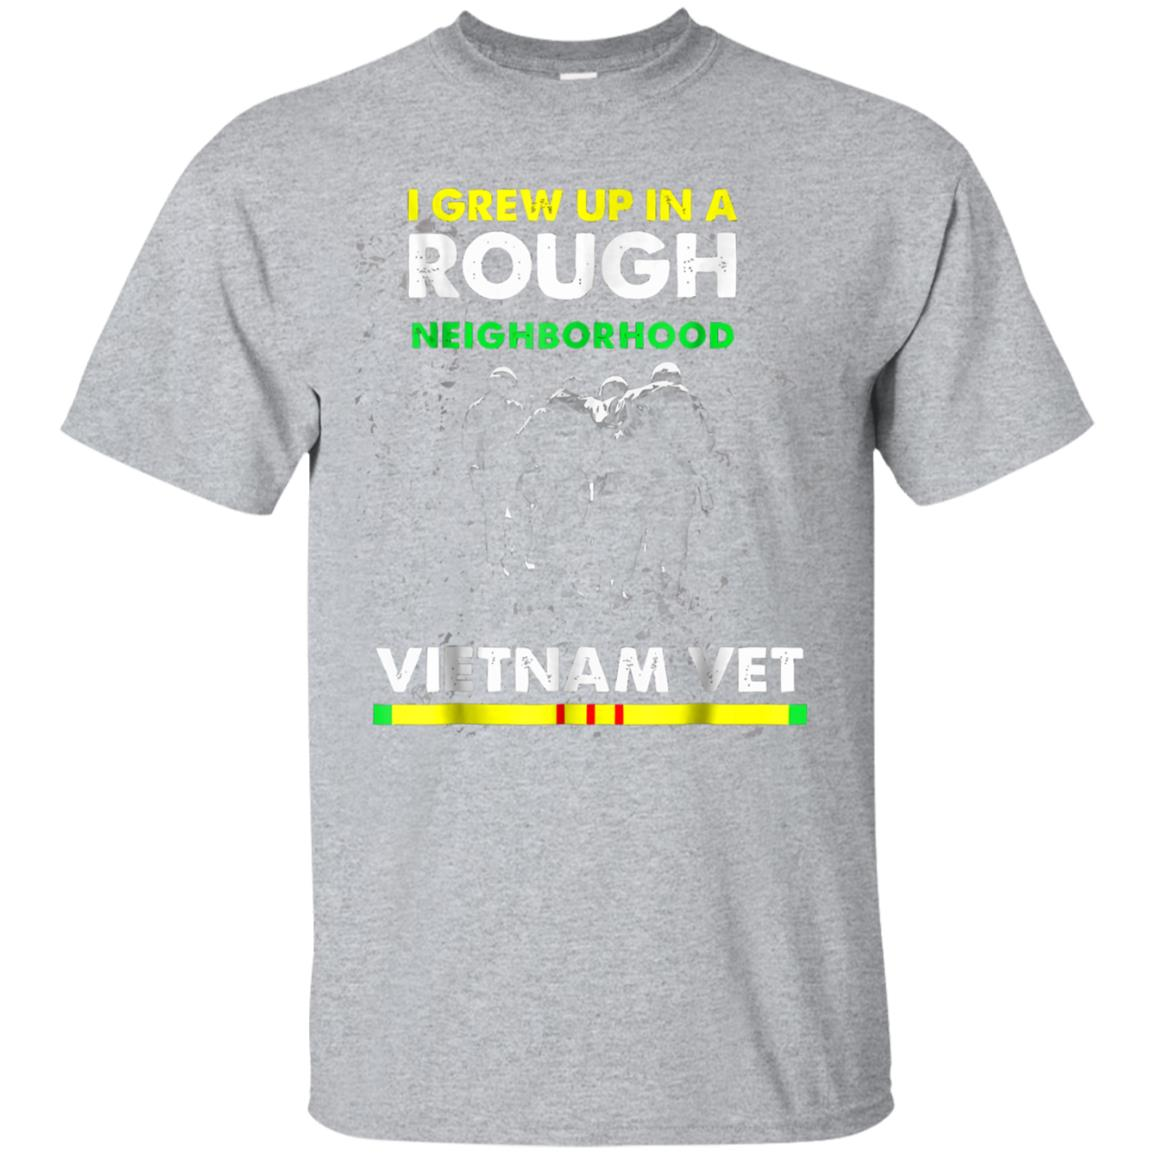 I Grew Up In A Rough Neighborhood Vietnam Veteran T Shirt 99promocode